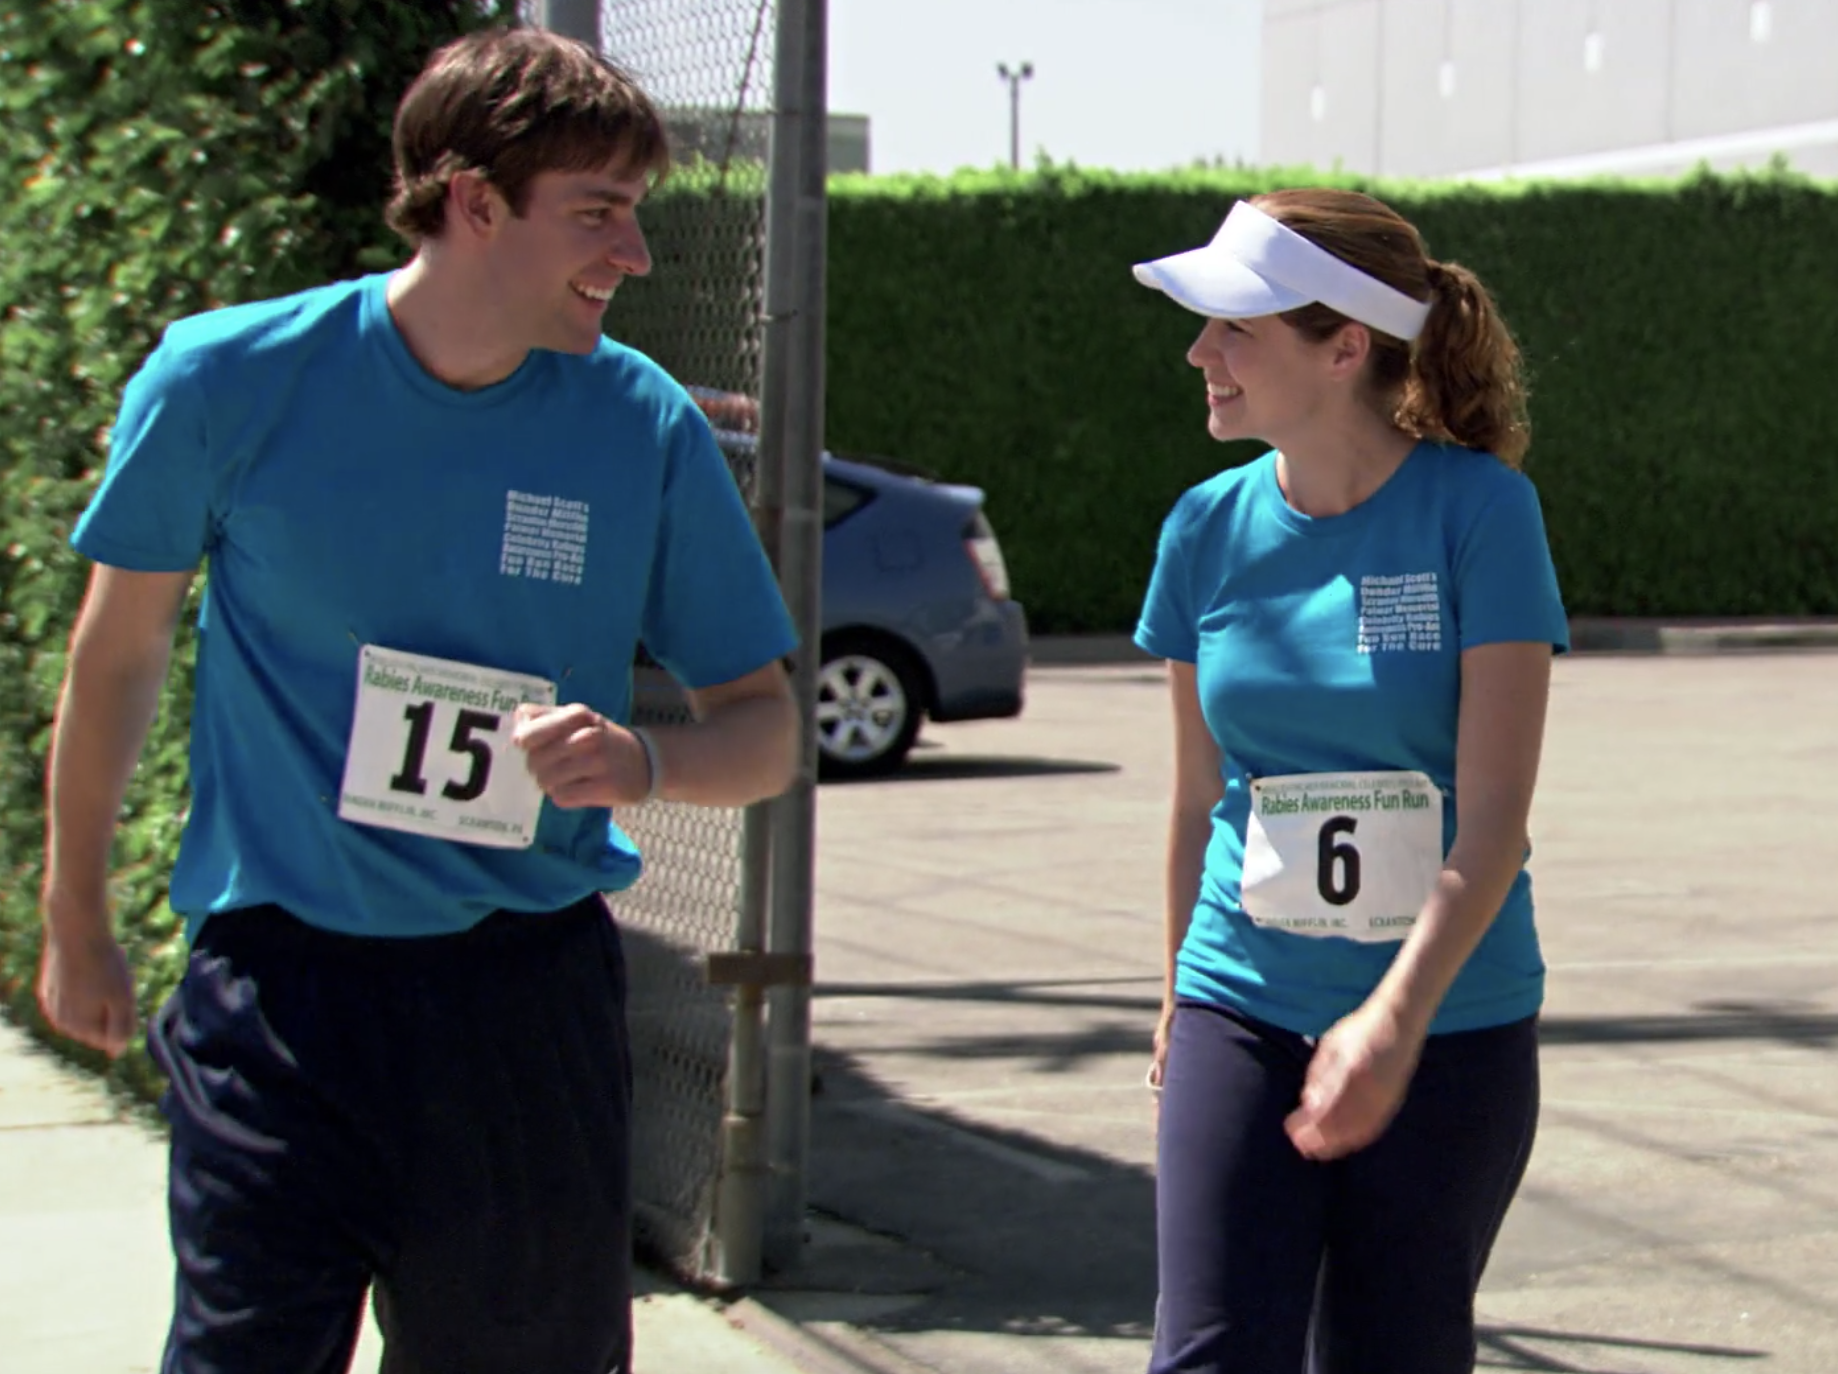 Jim and Pam are walking with each other at the Rabies Fun Run